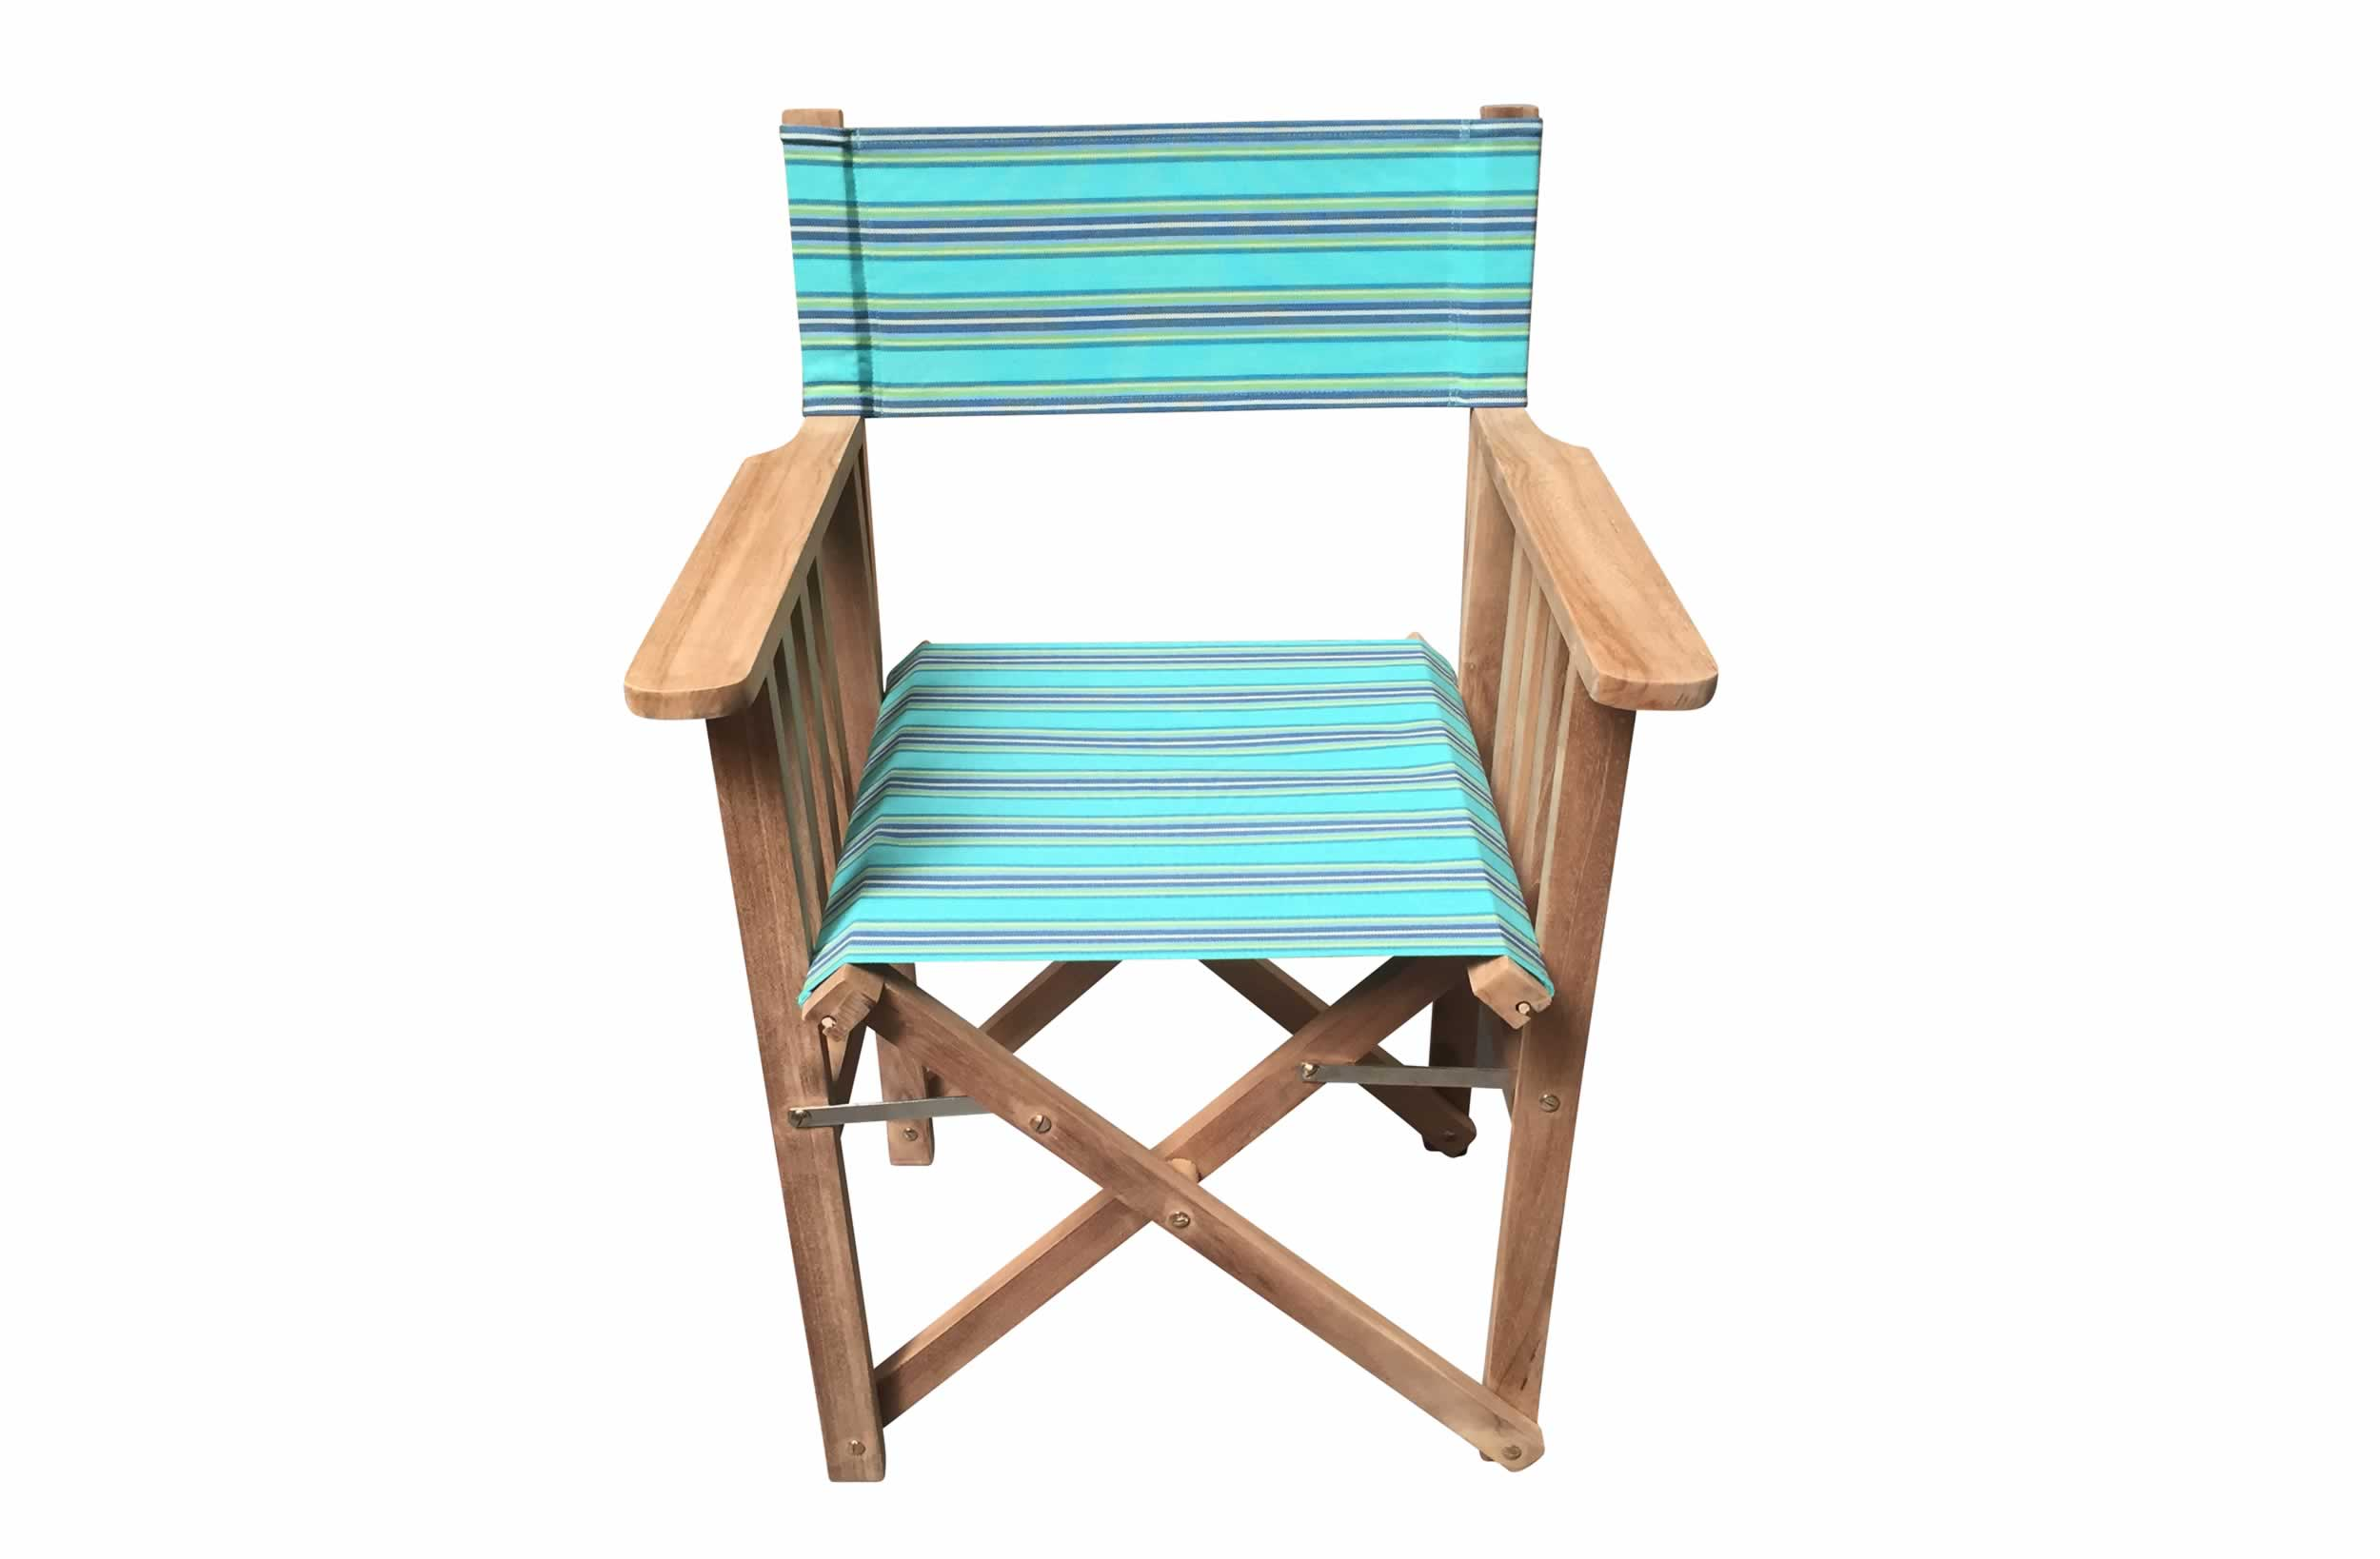 turquoise, blue, green - Directors Chairs